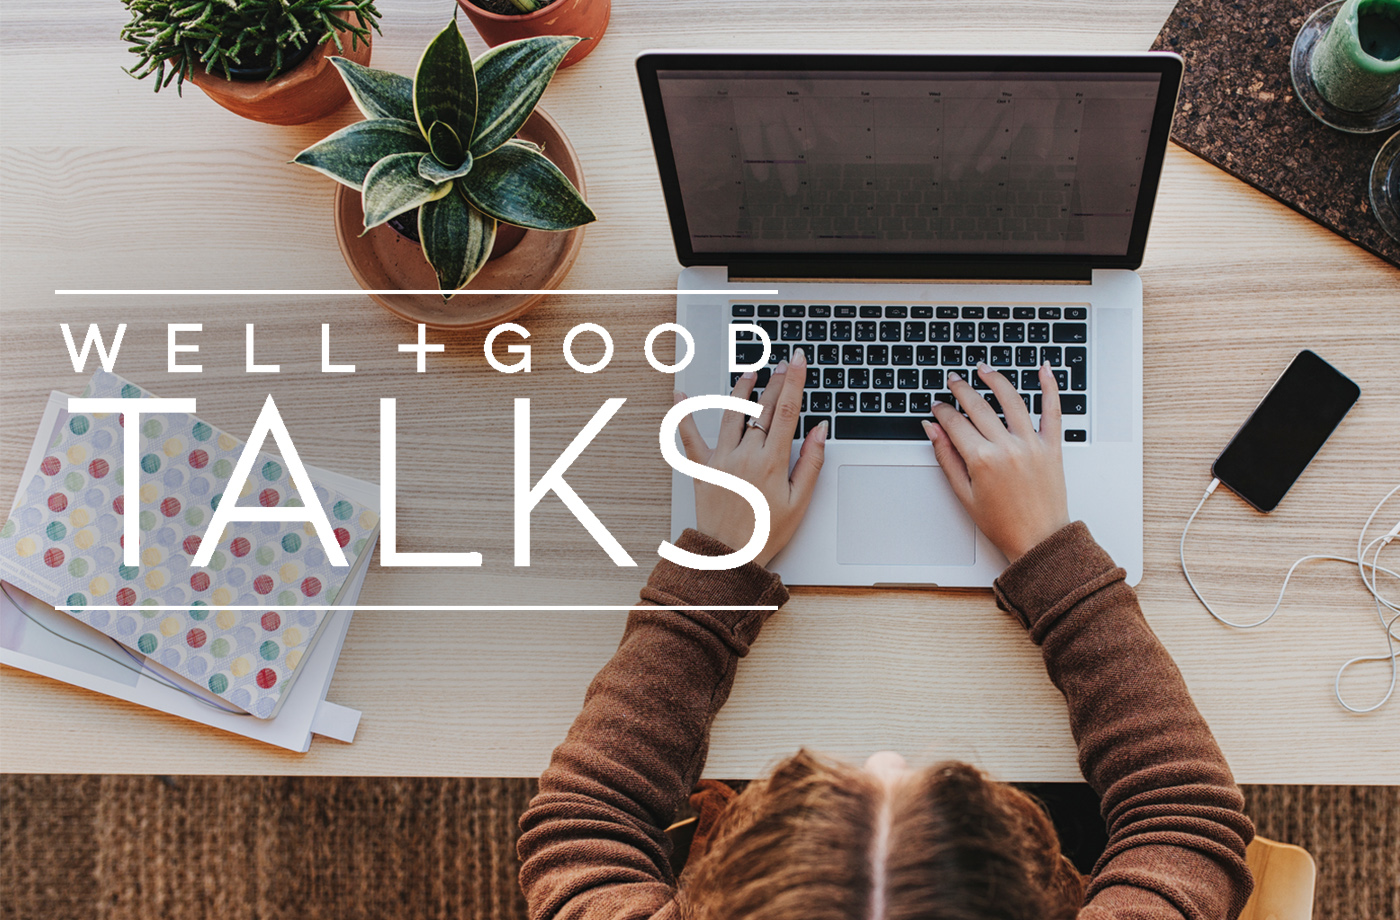 Thumbnail for Well+Good TALKS: Burnout 2.0: How to Achieve More Balance in a World That Values Busyness